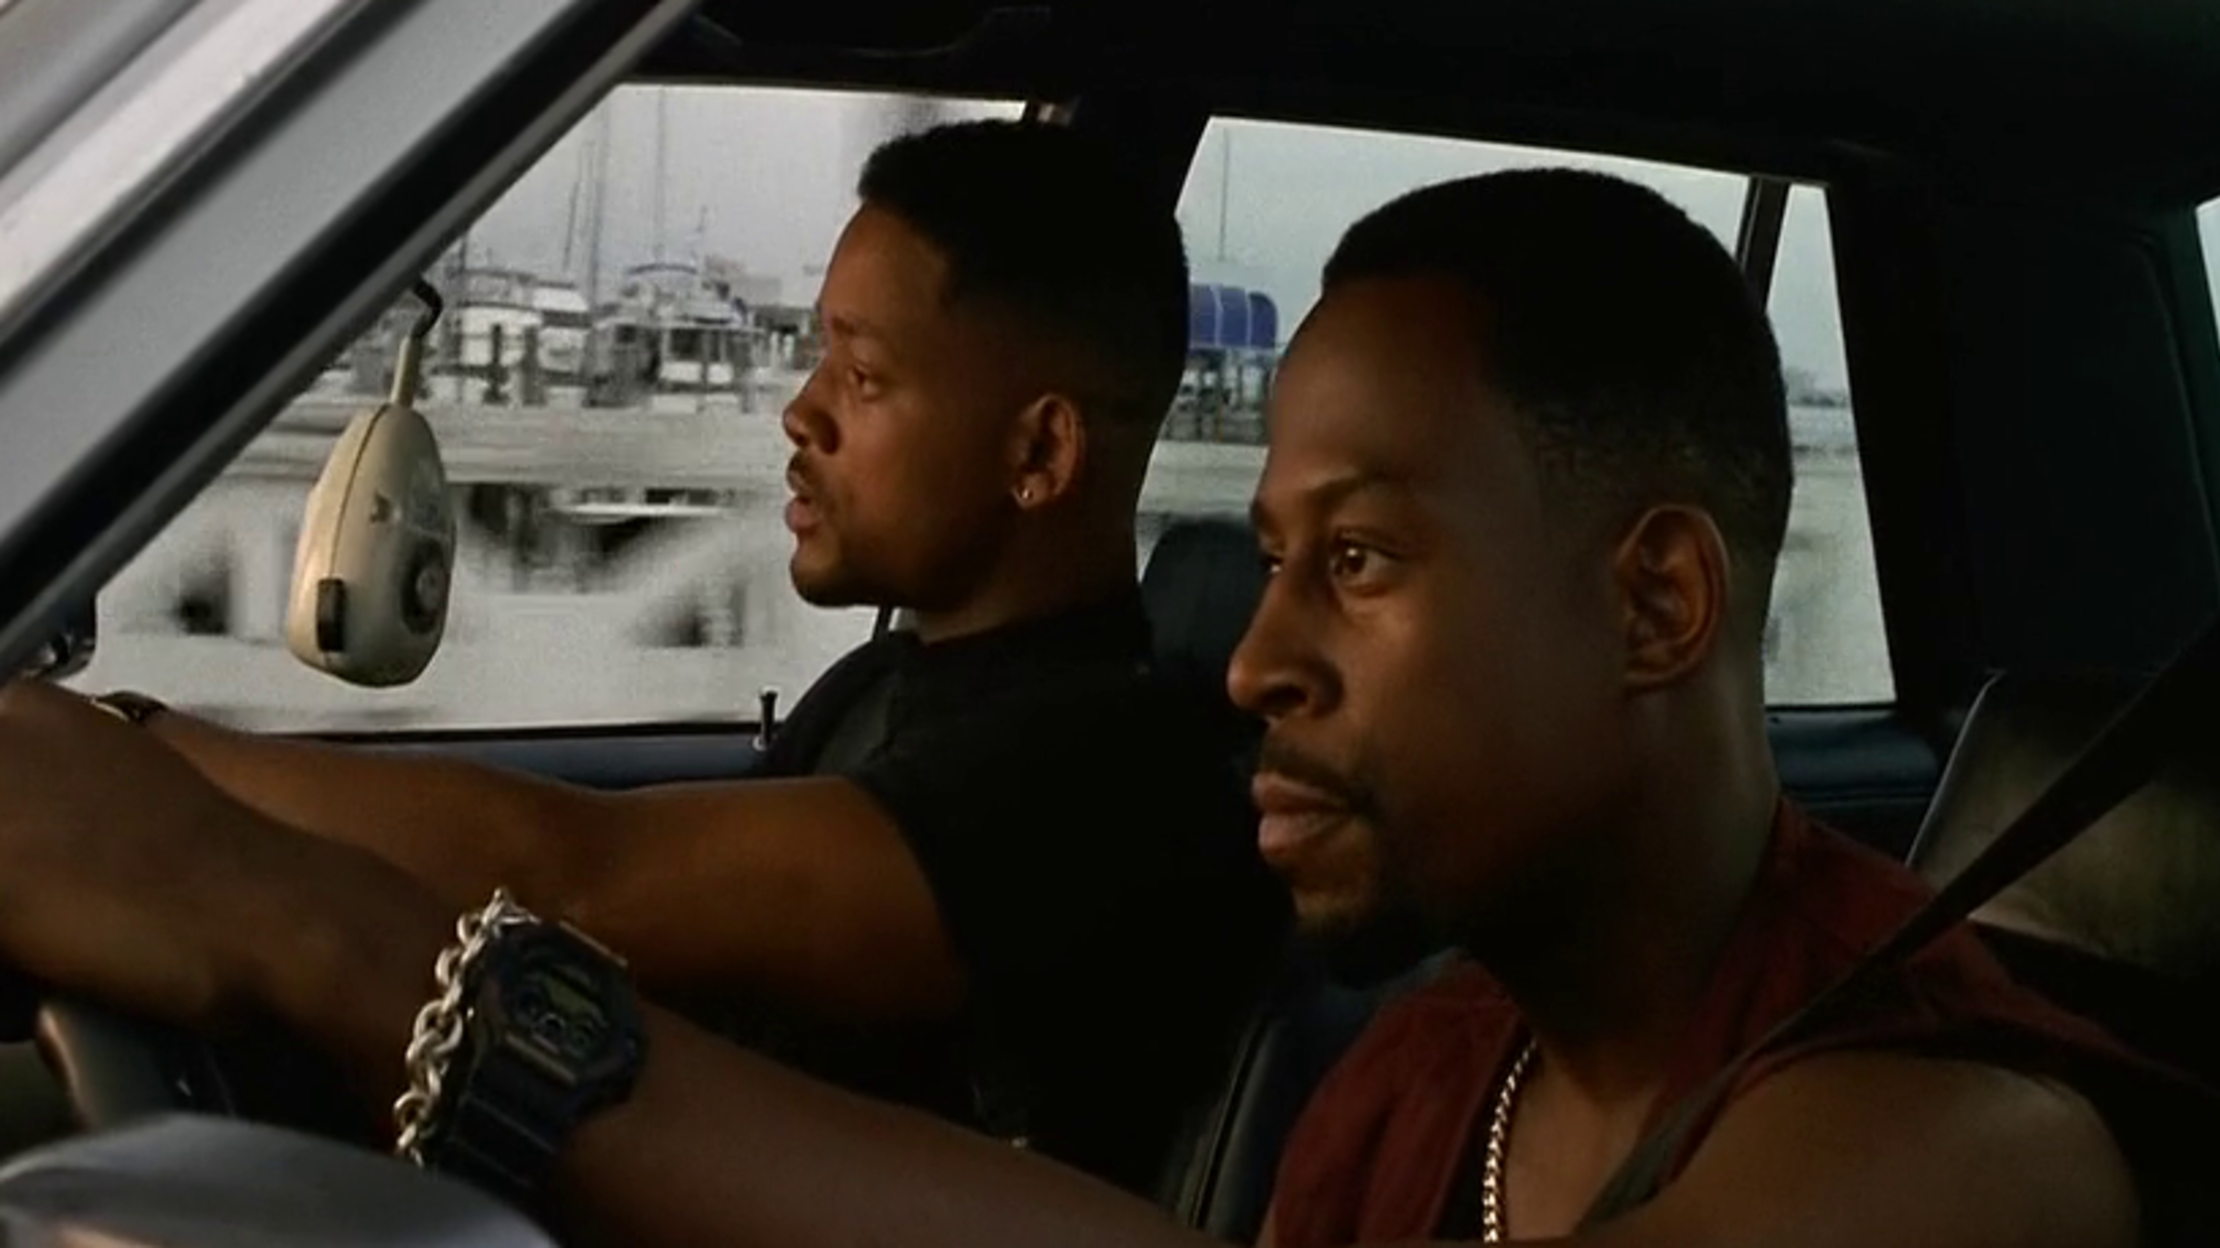 12 Things You Might Not Know About 'Bad Boys' | Mental Floss